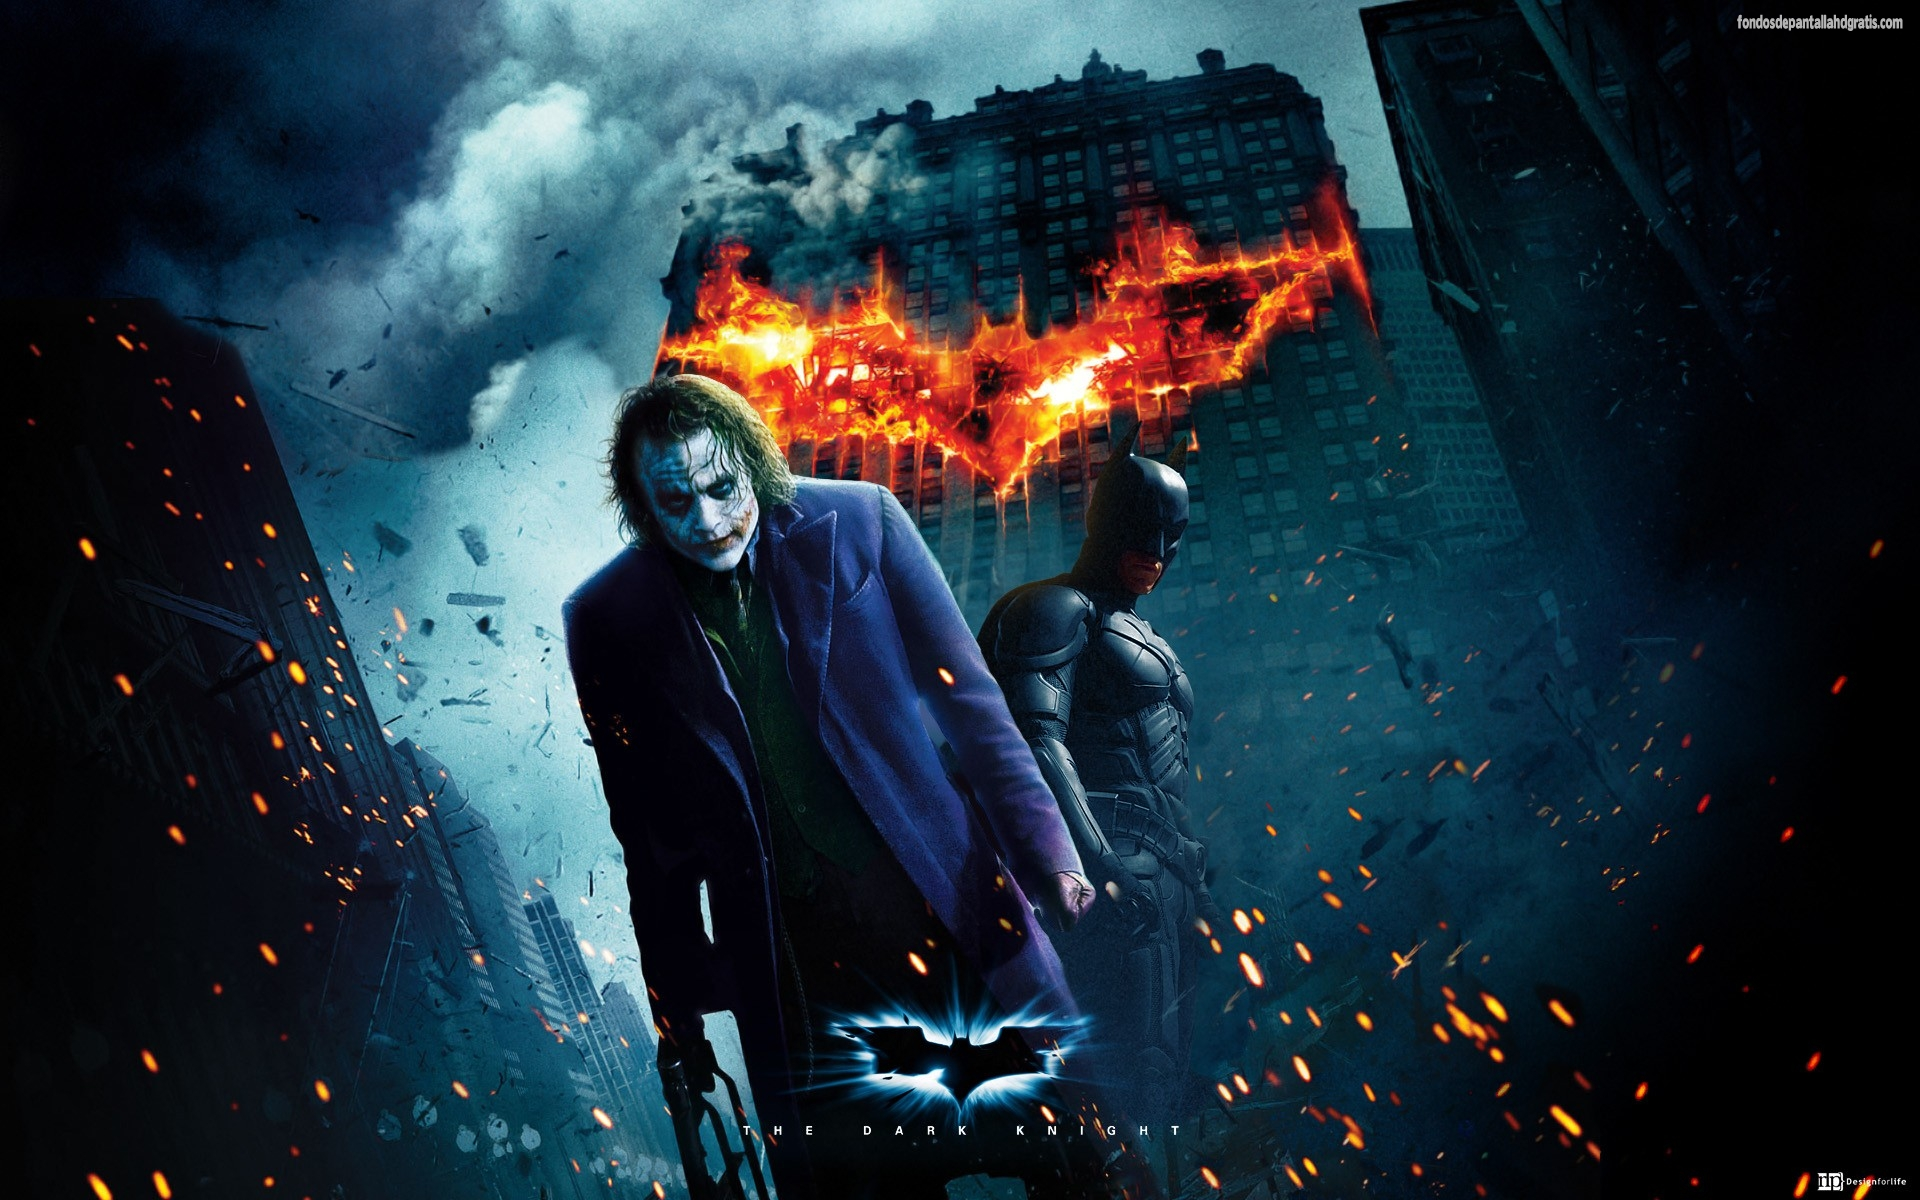 joker 3d batman the dark knight hd wallpapers hd widescreen Gratis 1920x1200